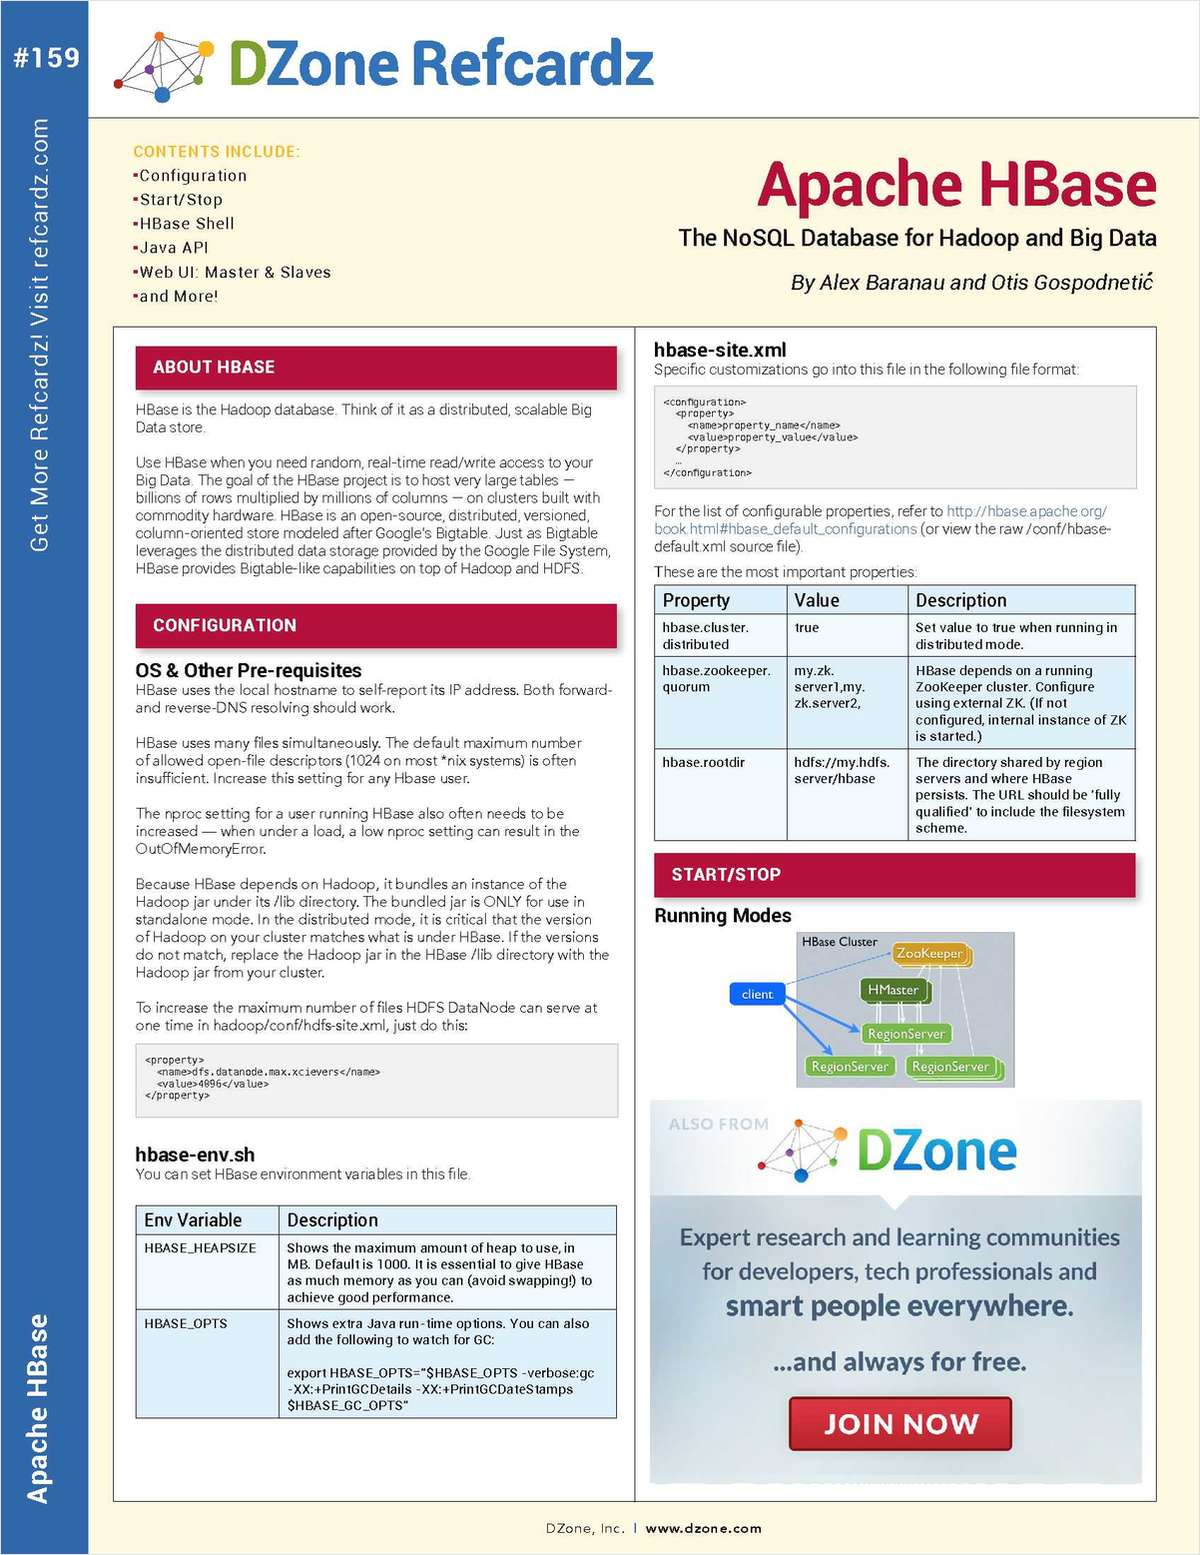 Apache HBase: The NoSQL Database for Hadoop and Big Data